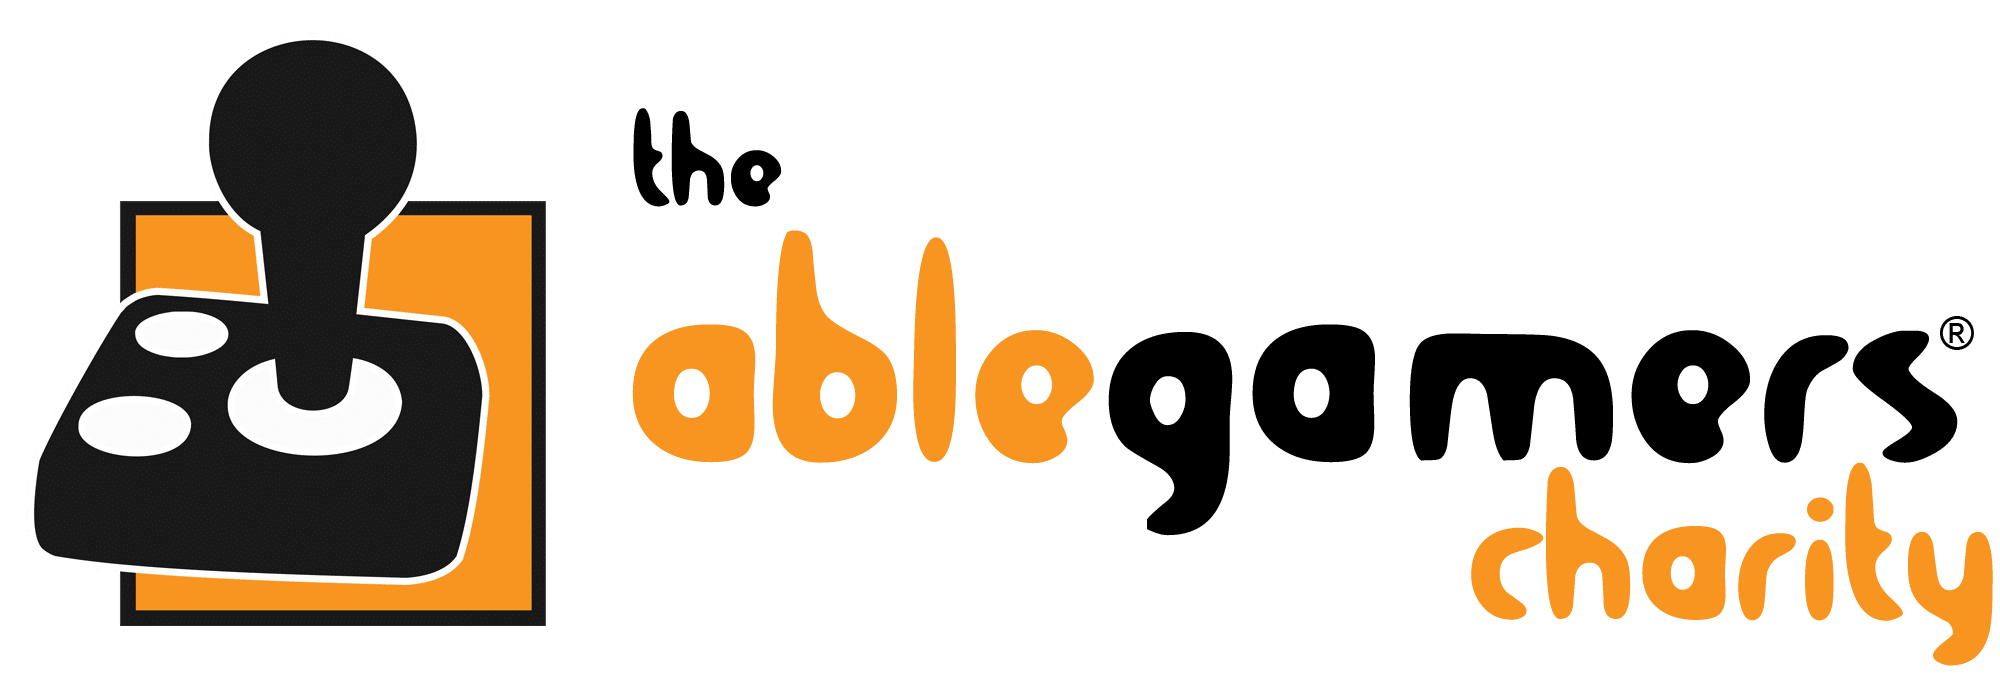 AbleGamers - Combating Social Isolation Through Play